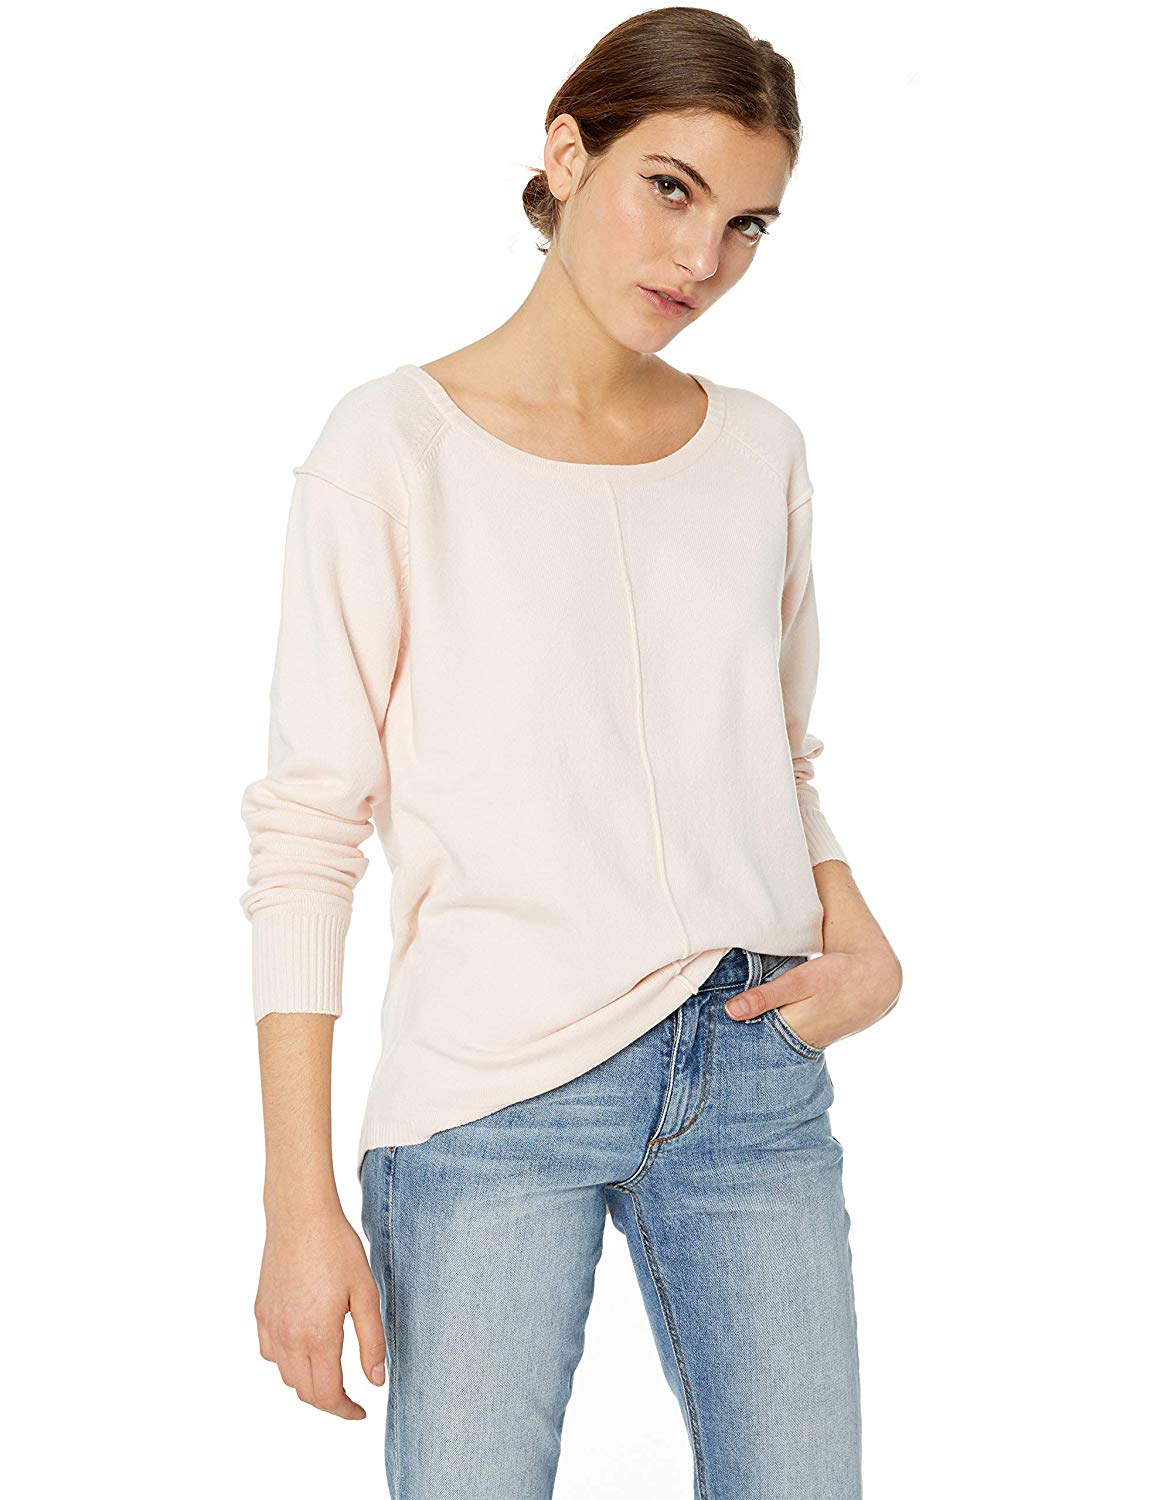 Women's Babysoft Long Sleeve Soft Solid Pullover Sweater  Calf-Length Pants  Casual  Skinny  Pleated  Low 21 Pieces